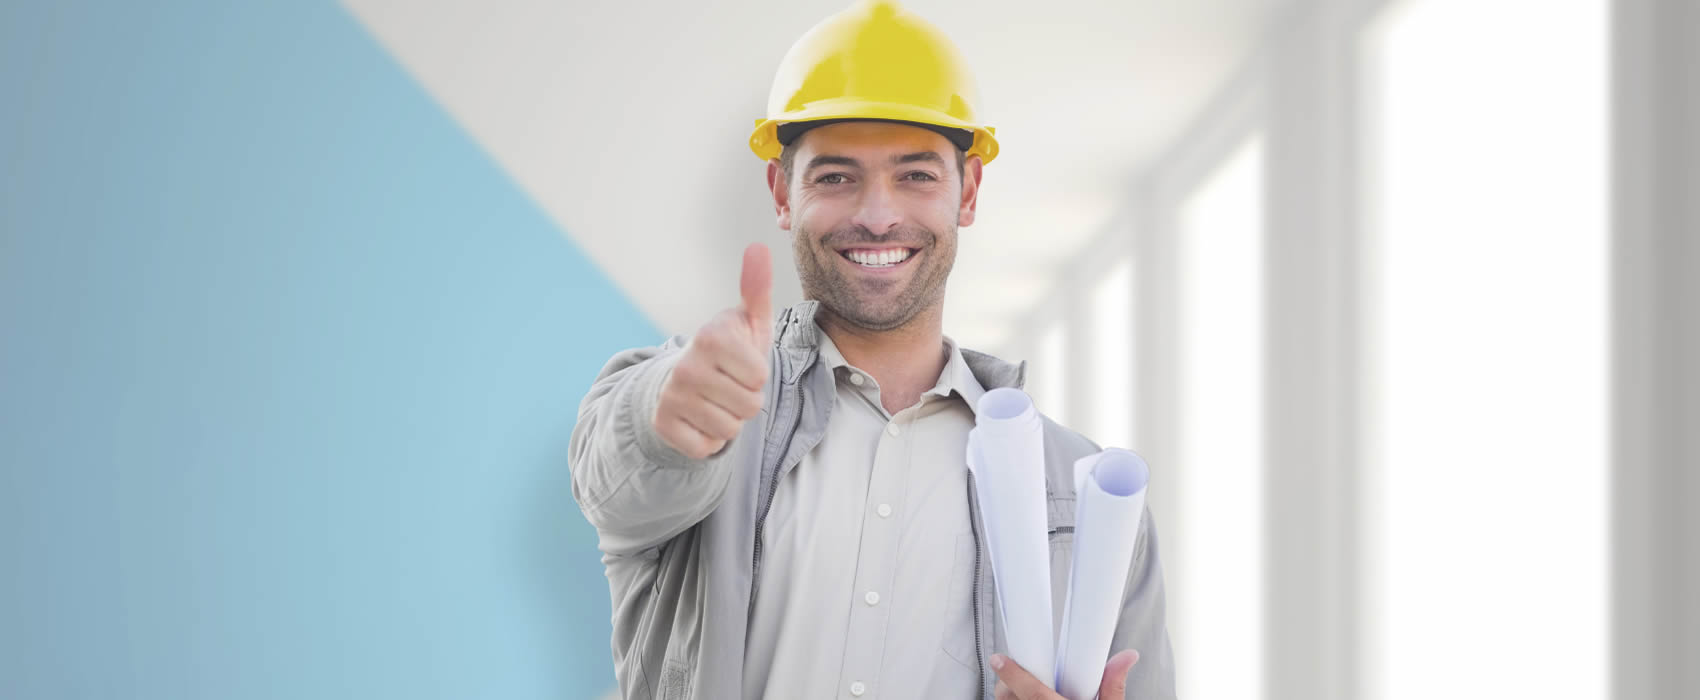 Man in hard hat giving the thumbs-up